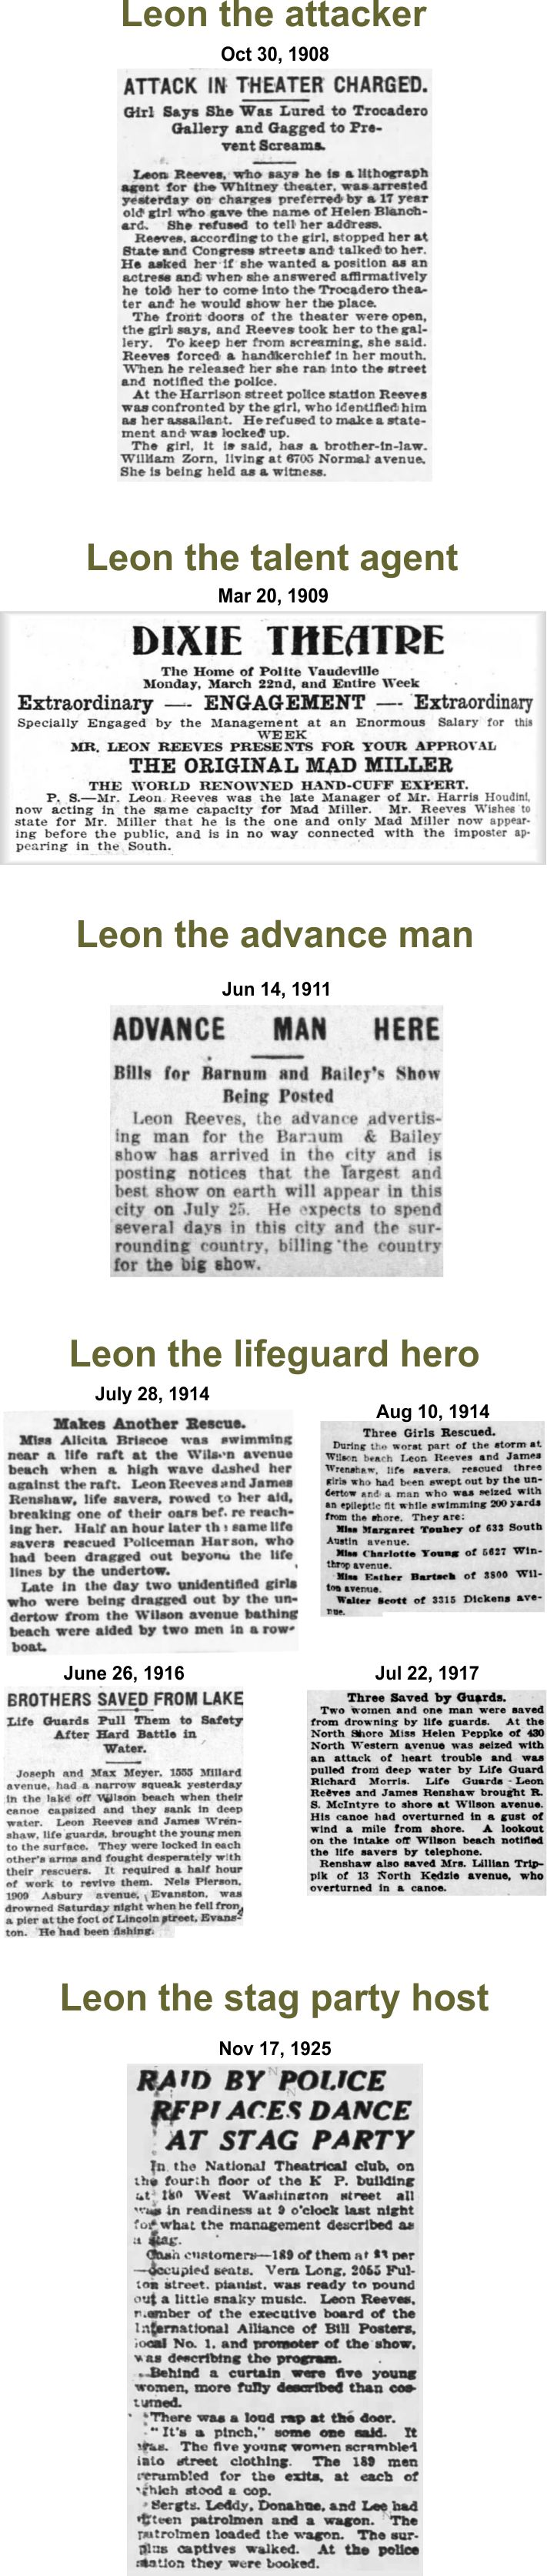 Leon Reeves, man of many stages